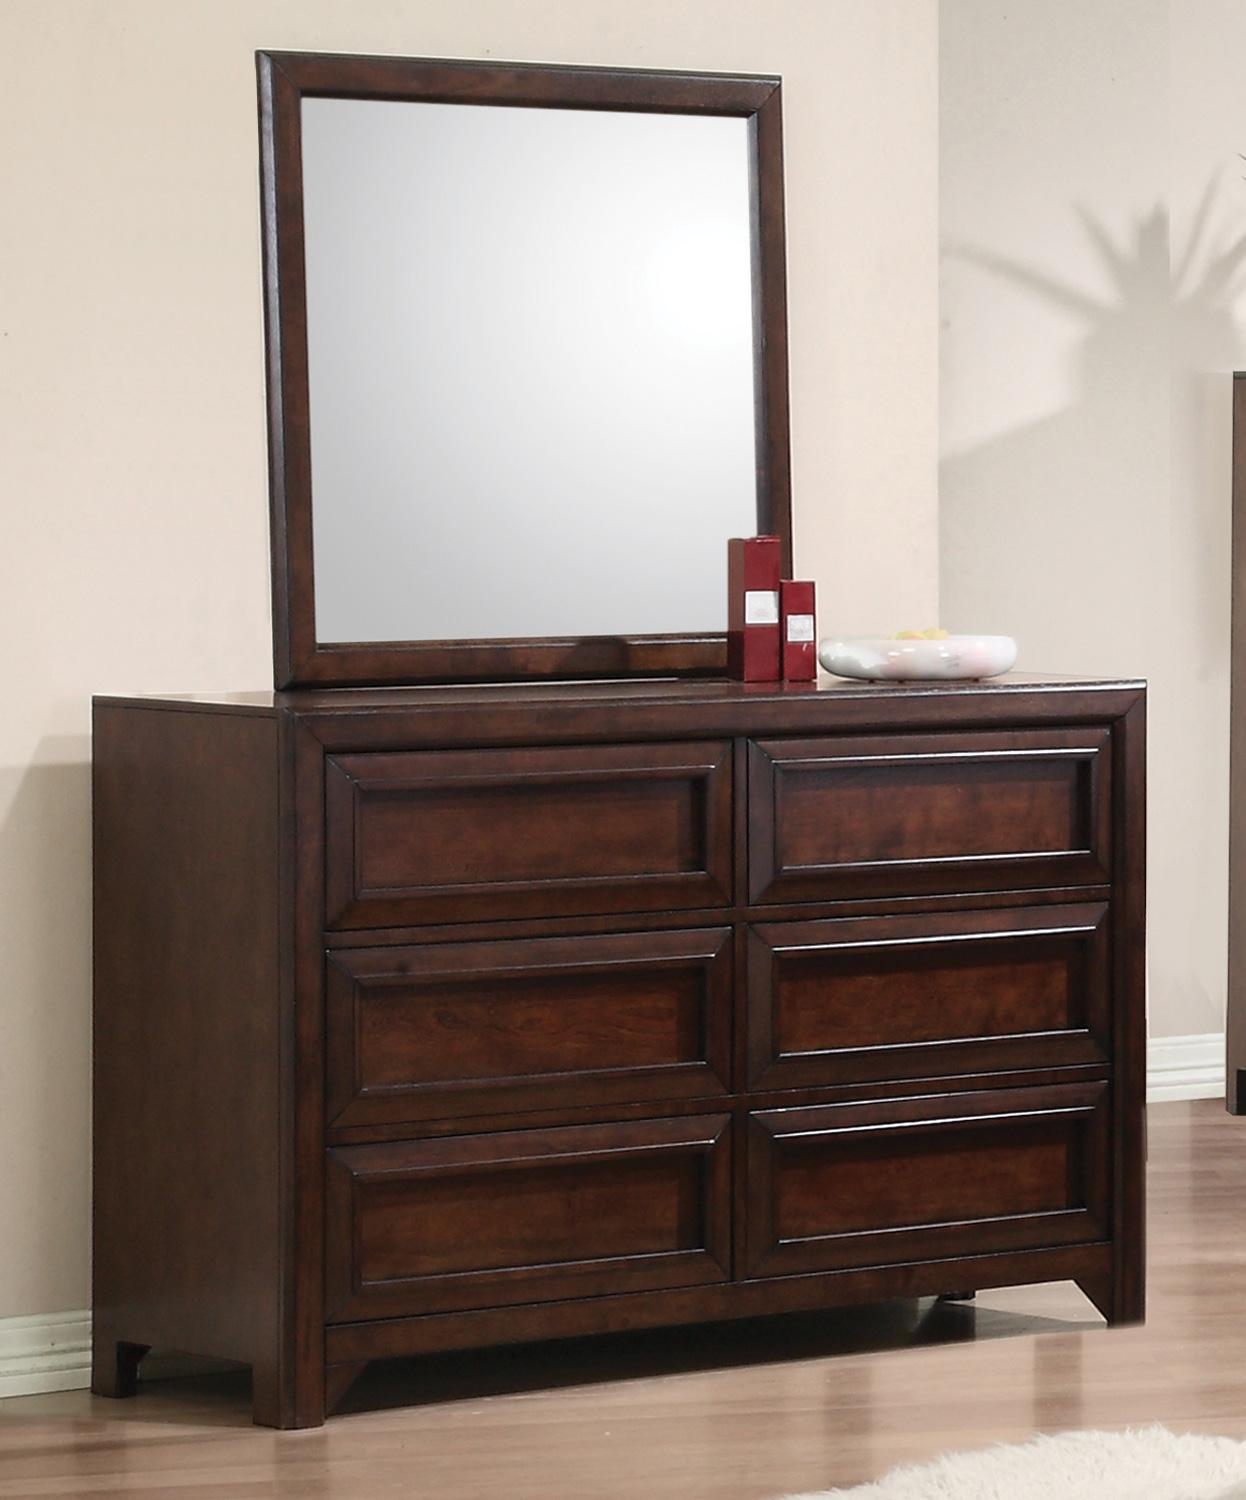 Jerico drawer dresser